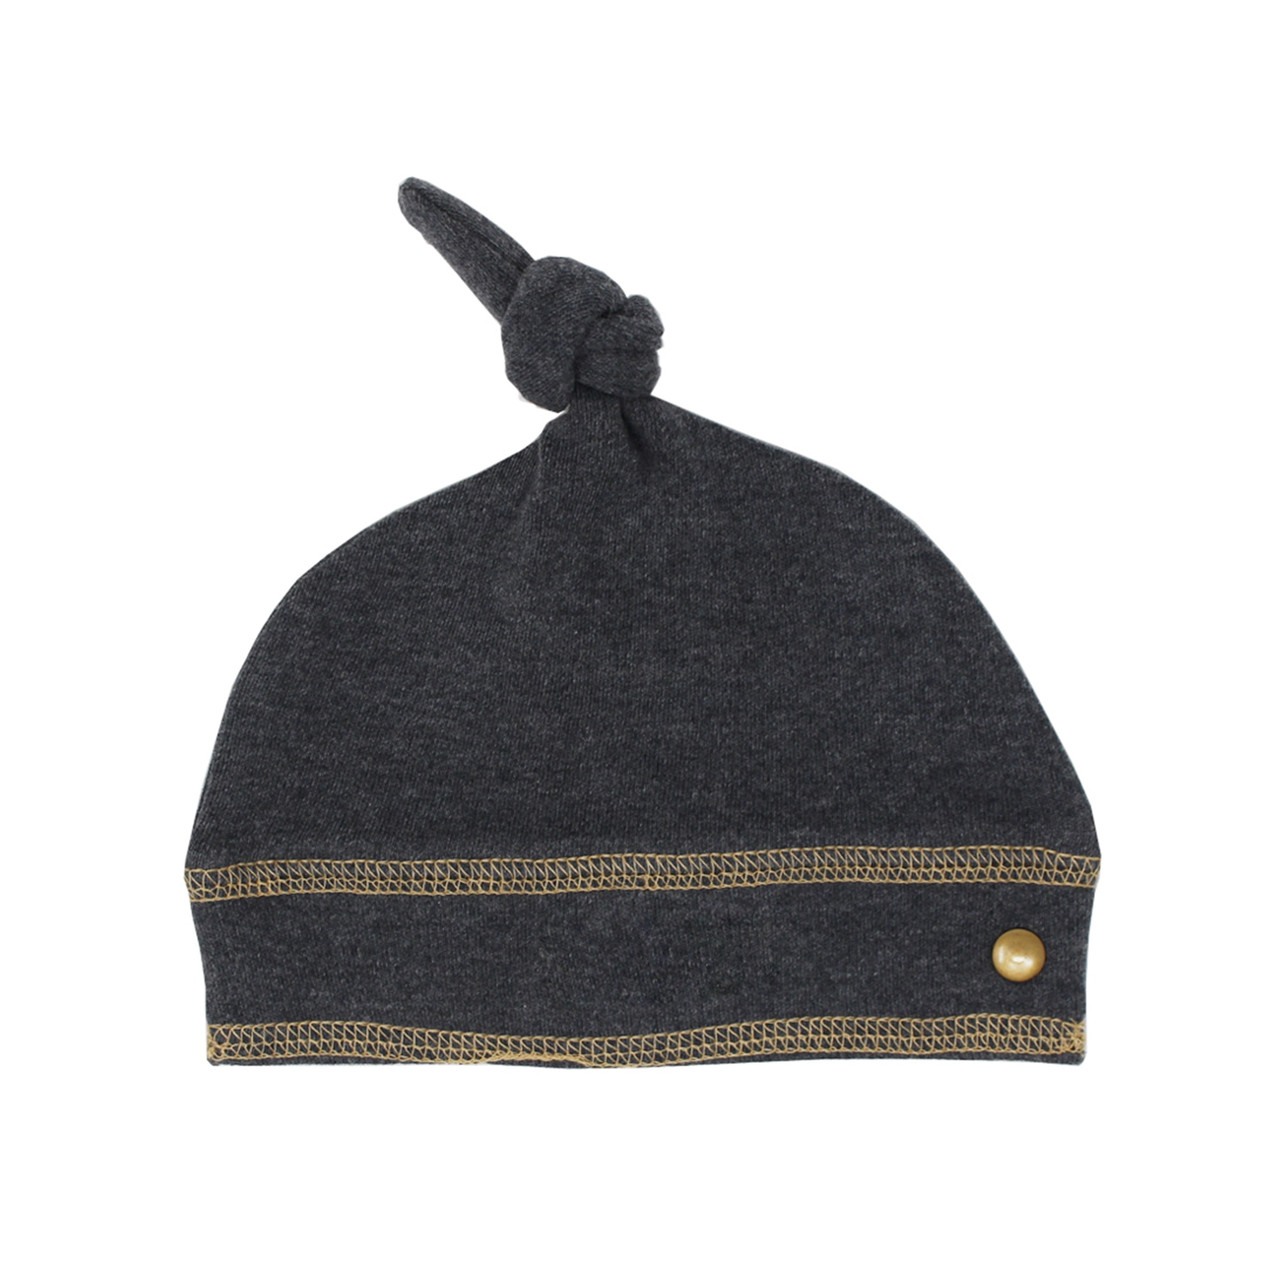 Organic Banded Top-Knot Hat in Dark Heather/Honey, Flat